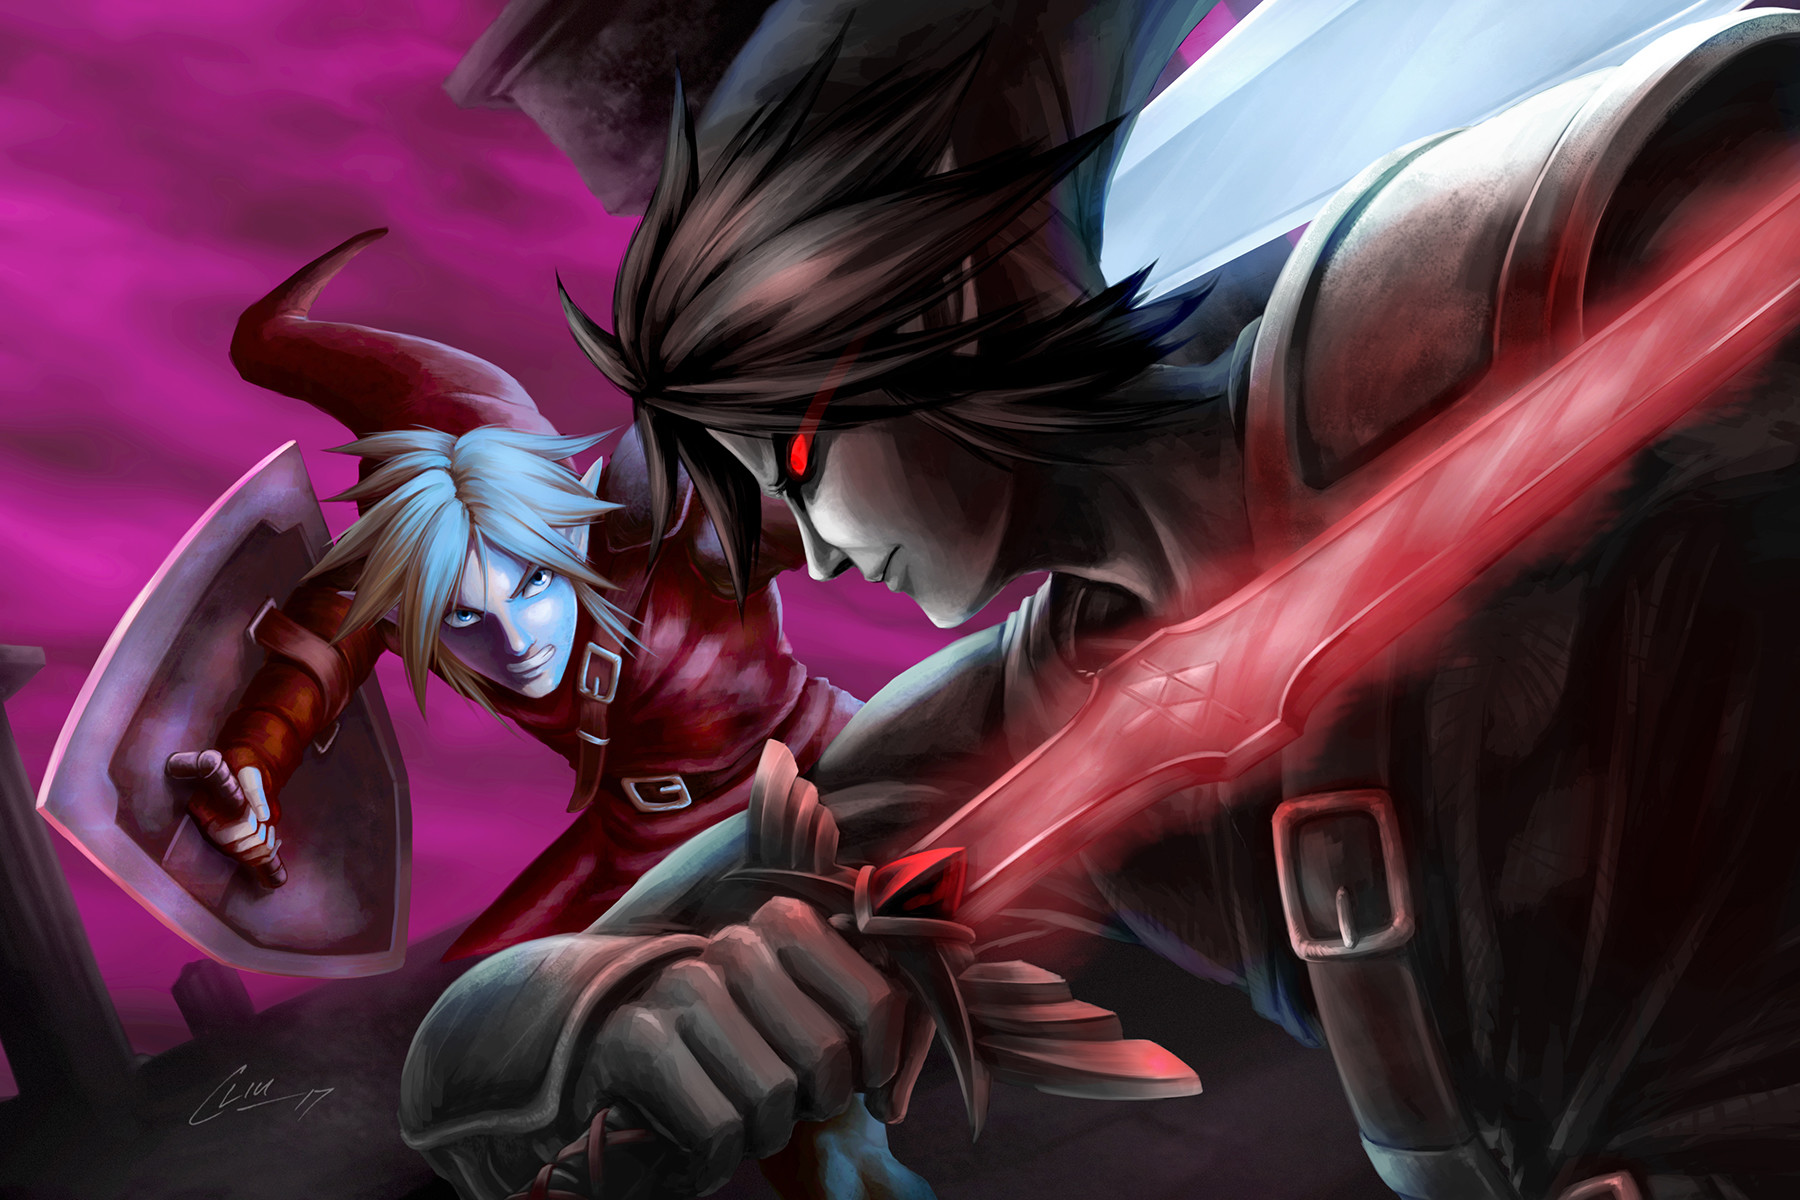 link vs dark link my submission for the dark horse